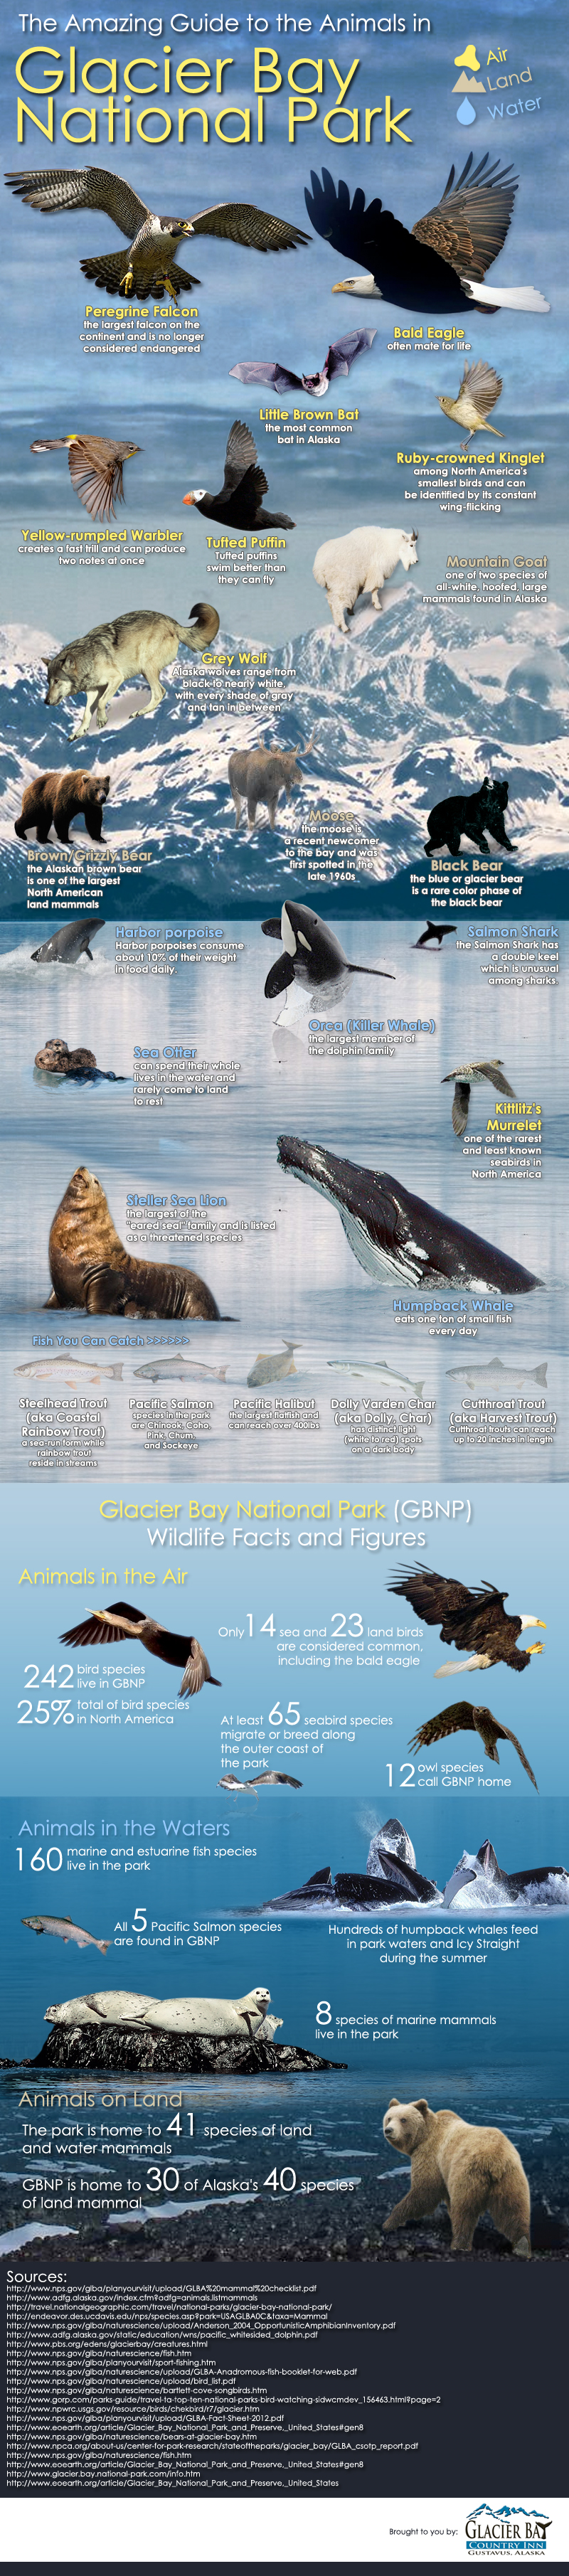 Glacier Bay National Park Animals Guide